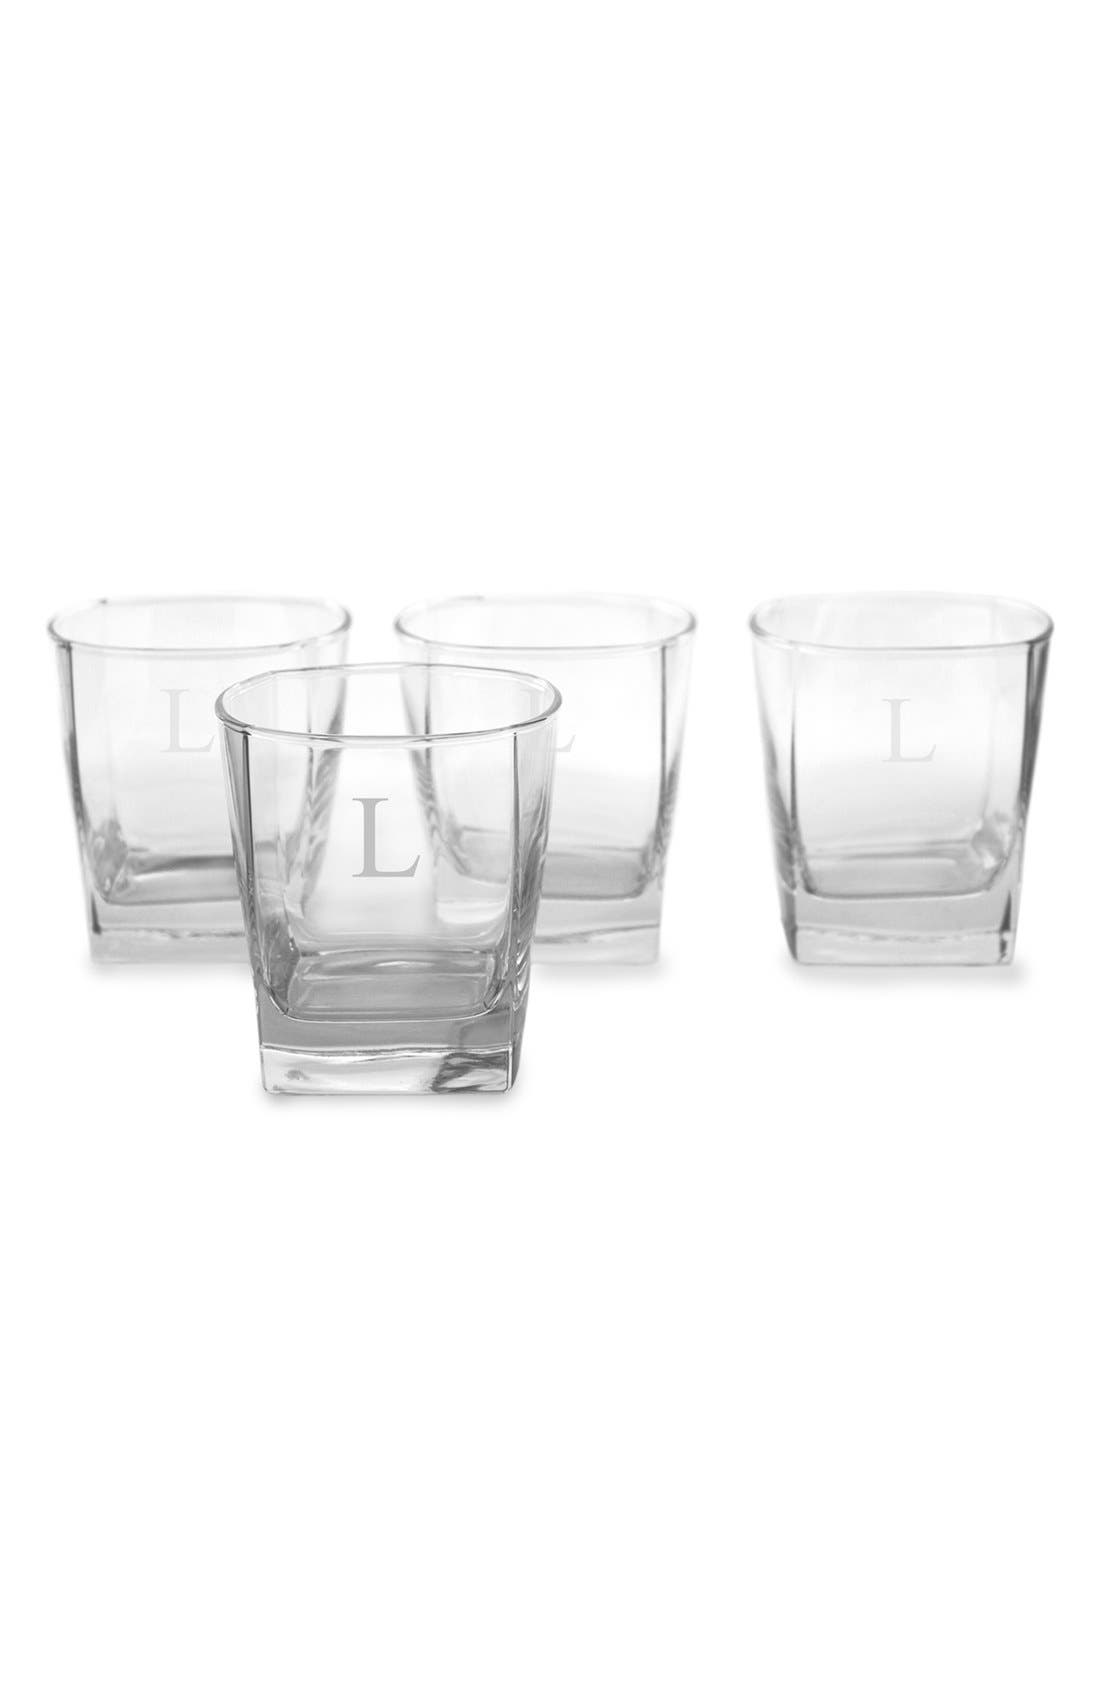 Alternate Image 1 Selected - Cathy's Concepts Monogram Rocks Glasses (Set of 4)